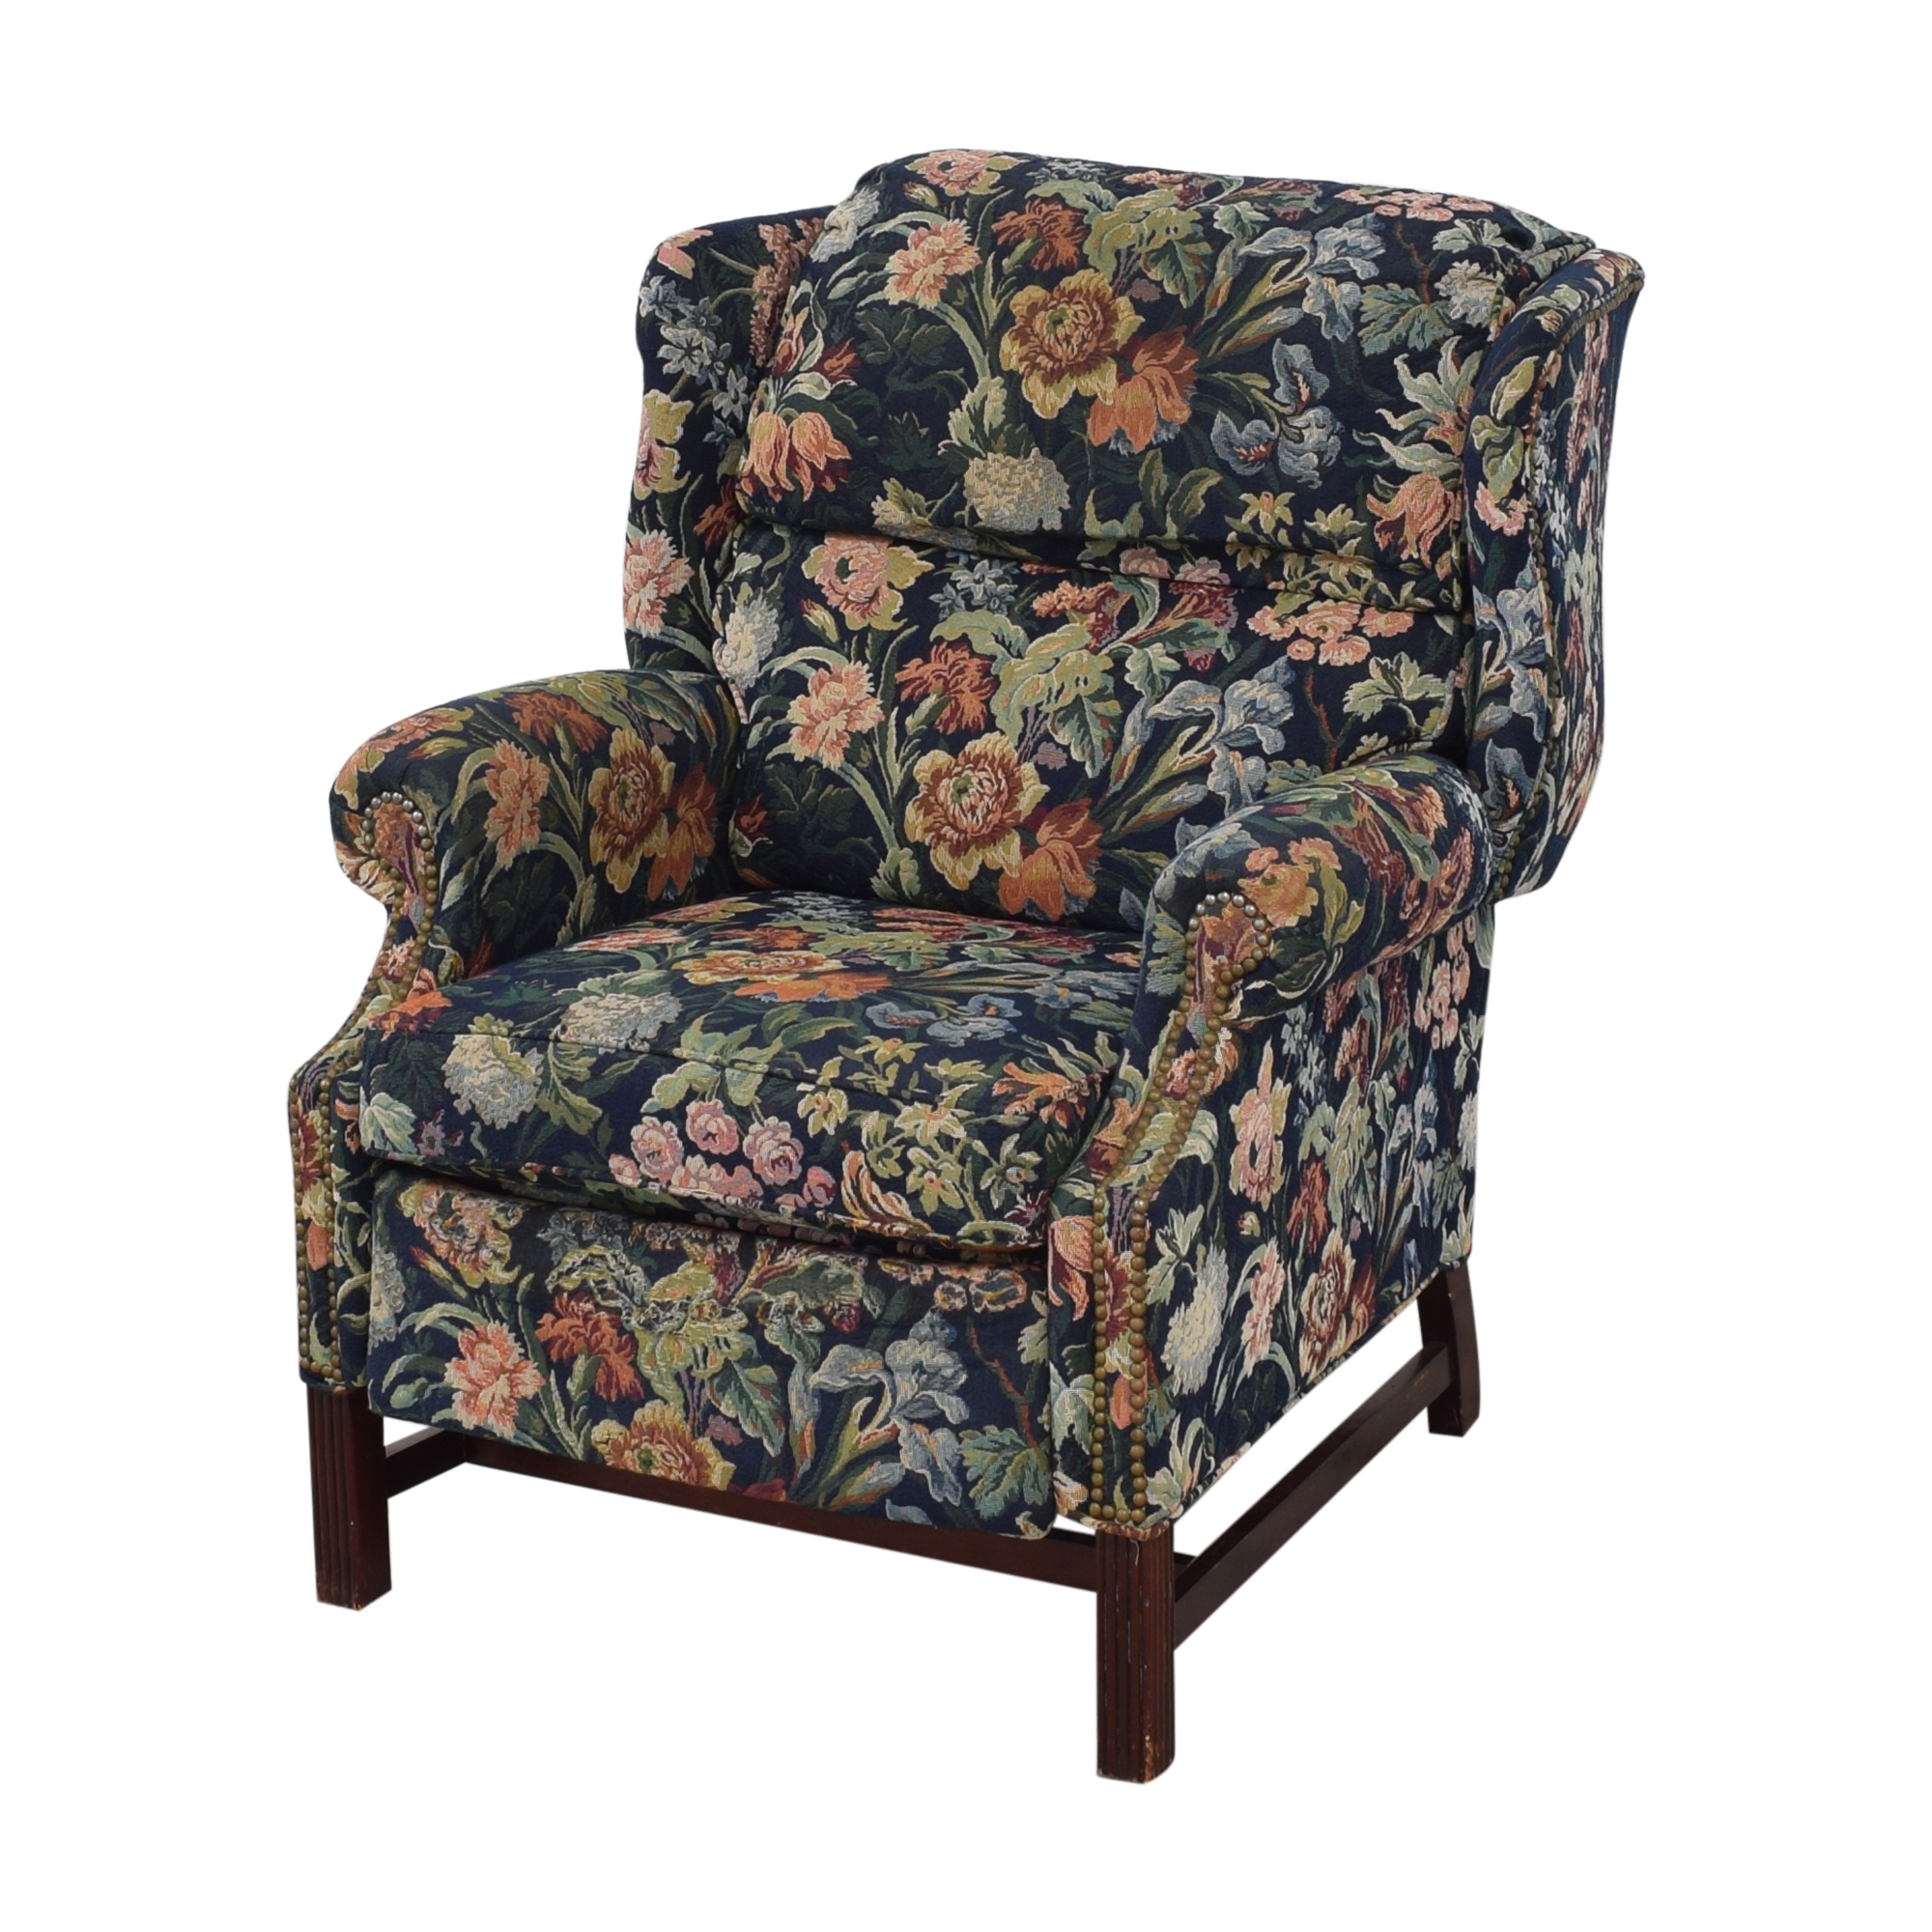 Thomasville Thomasville Wing Recliner Chair second hand